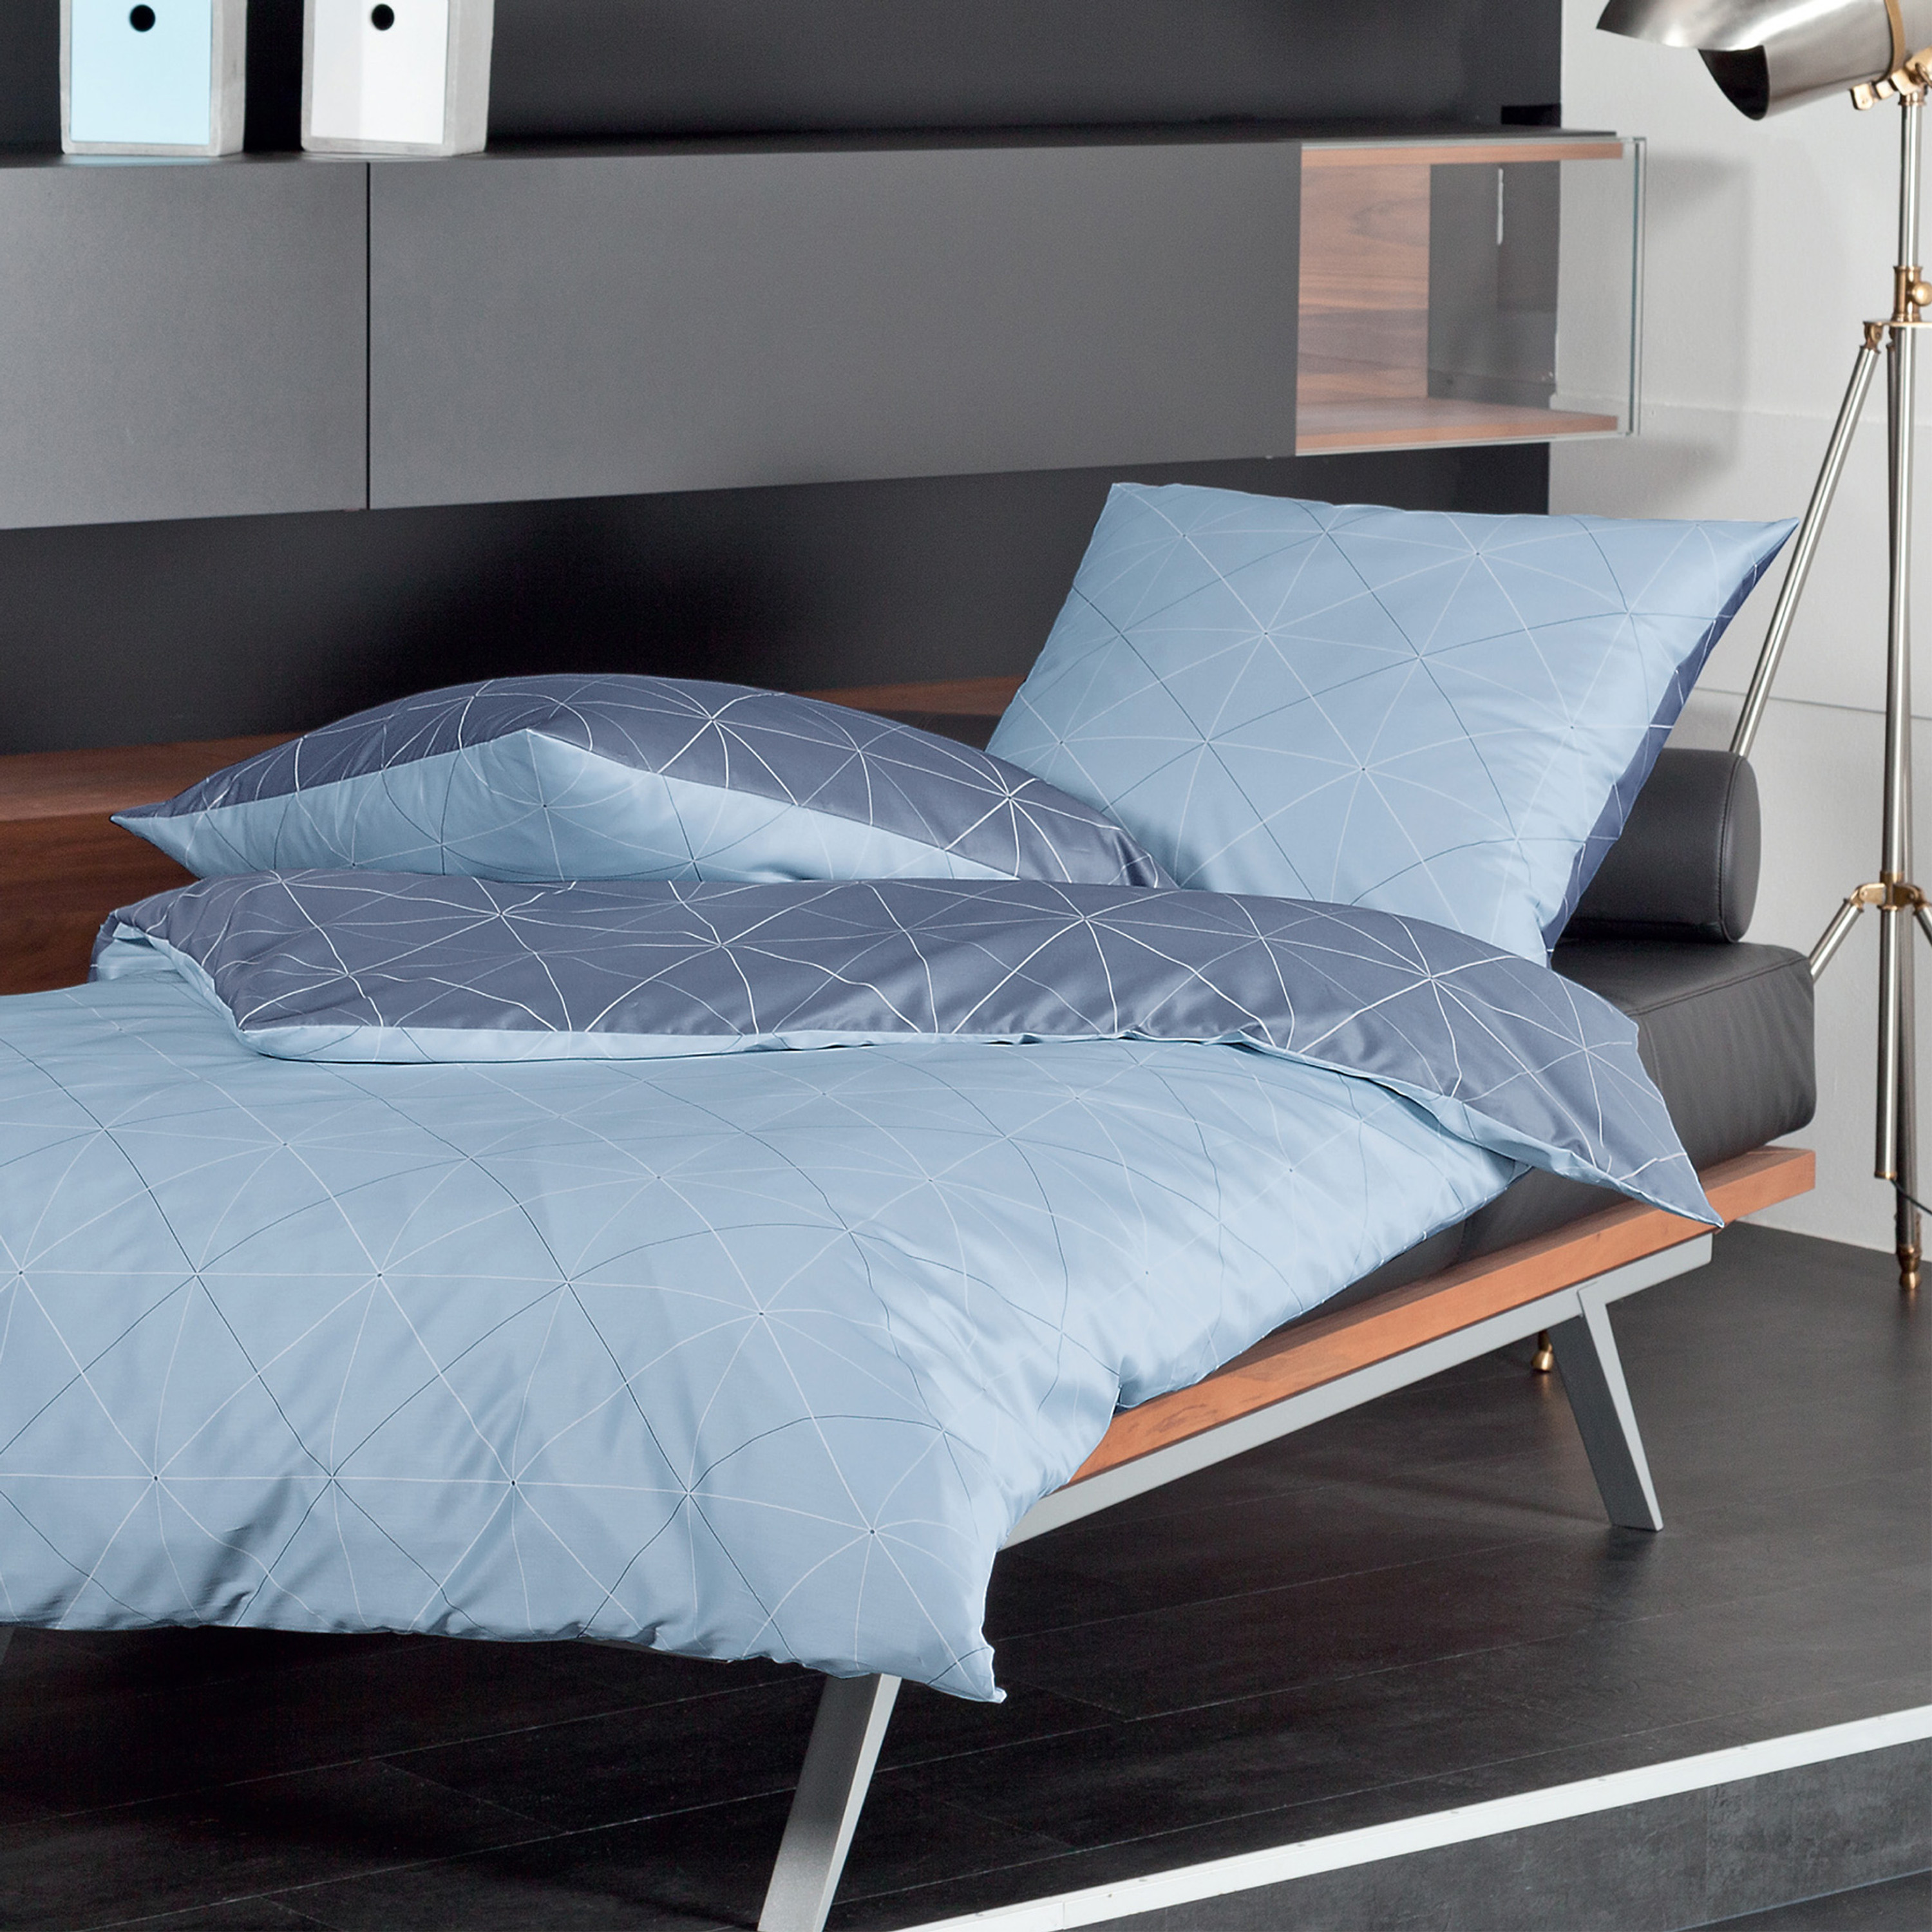 janine mako satin bettw sche j blau grau. Black Bedroom Furniture Sets. Home Design Ideas